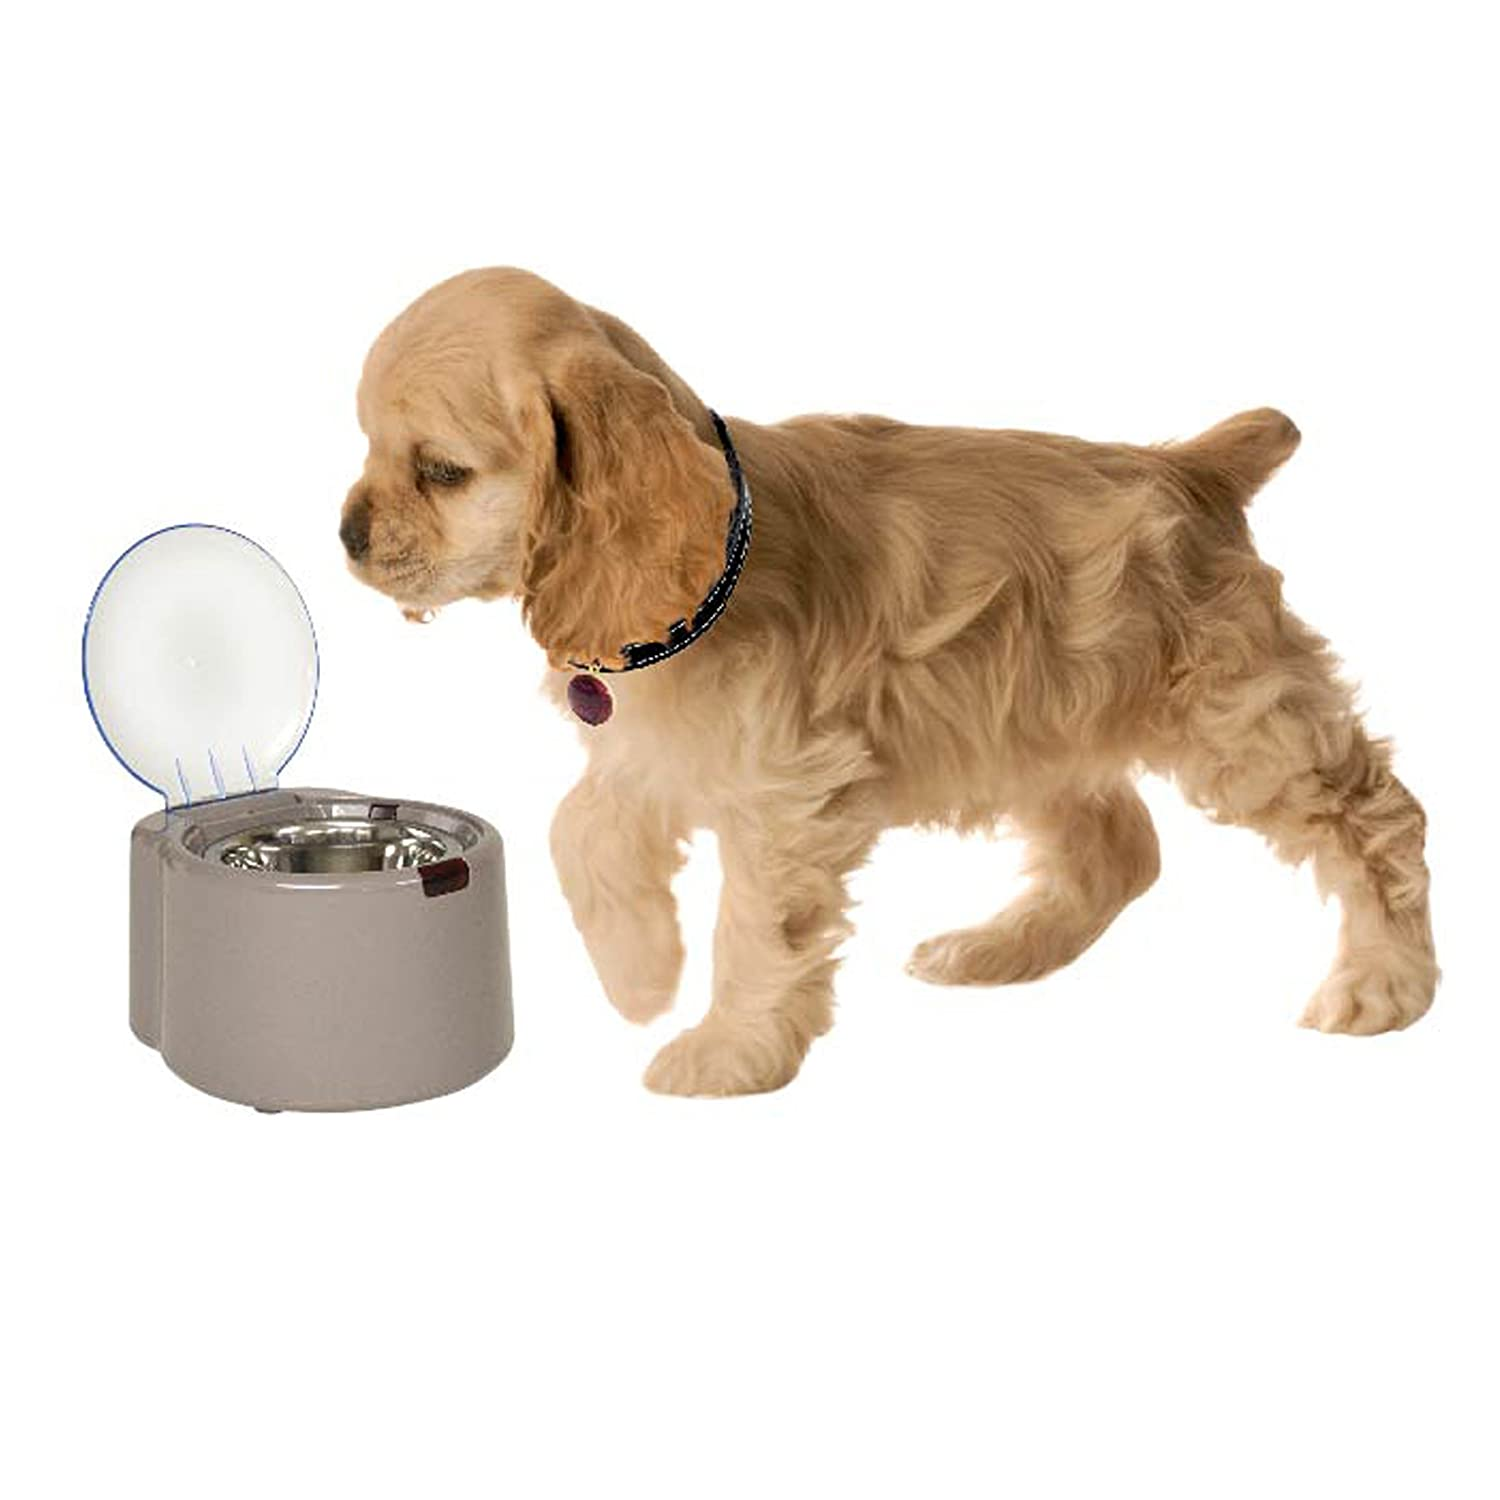 for ca by petwant cats automatic food feeder dispenser amazon timer controlled dp smart pet dry wifi dogs supplies phones dog and